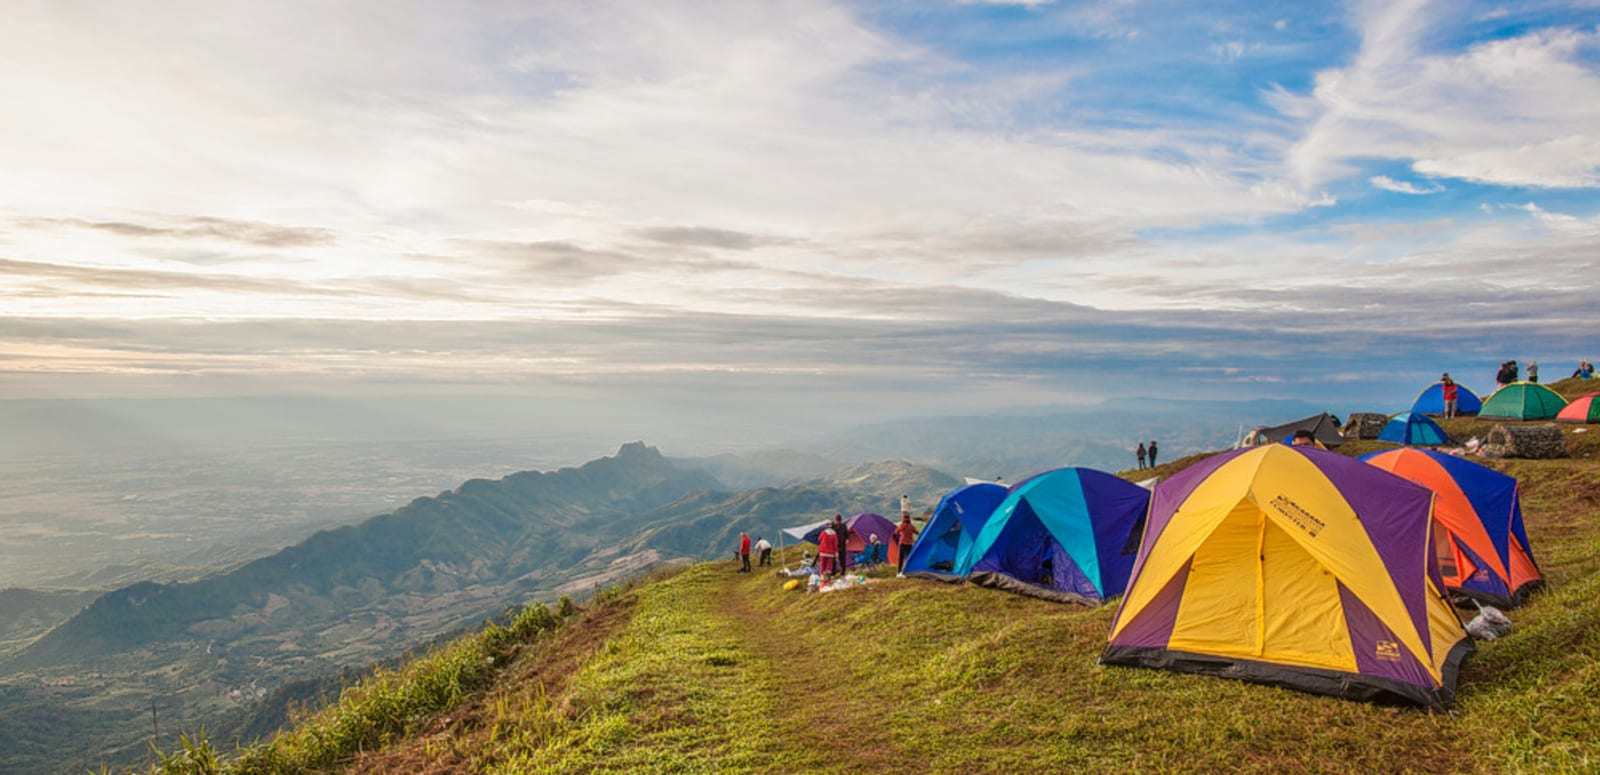 30 Best Camping Places near Pune - 2019 (Photos & Reviews)